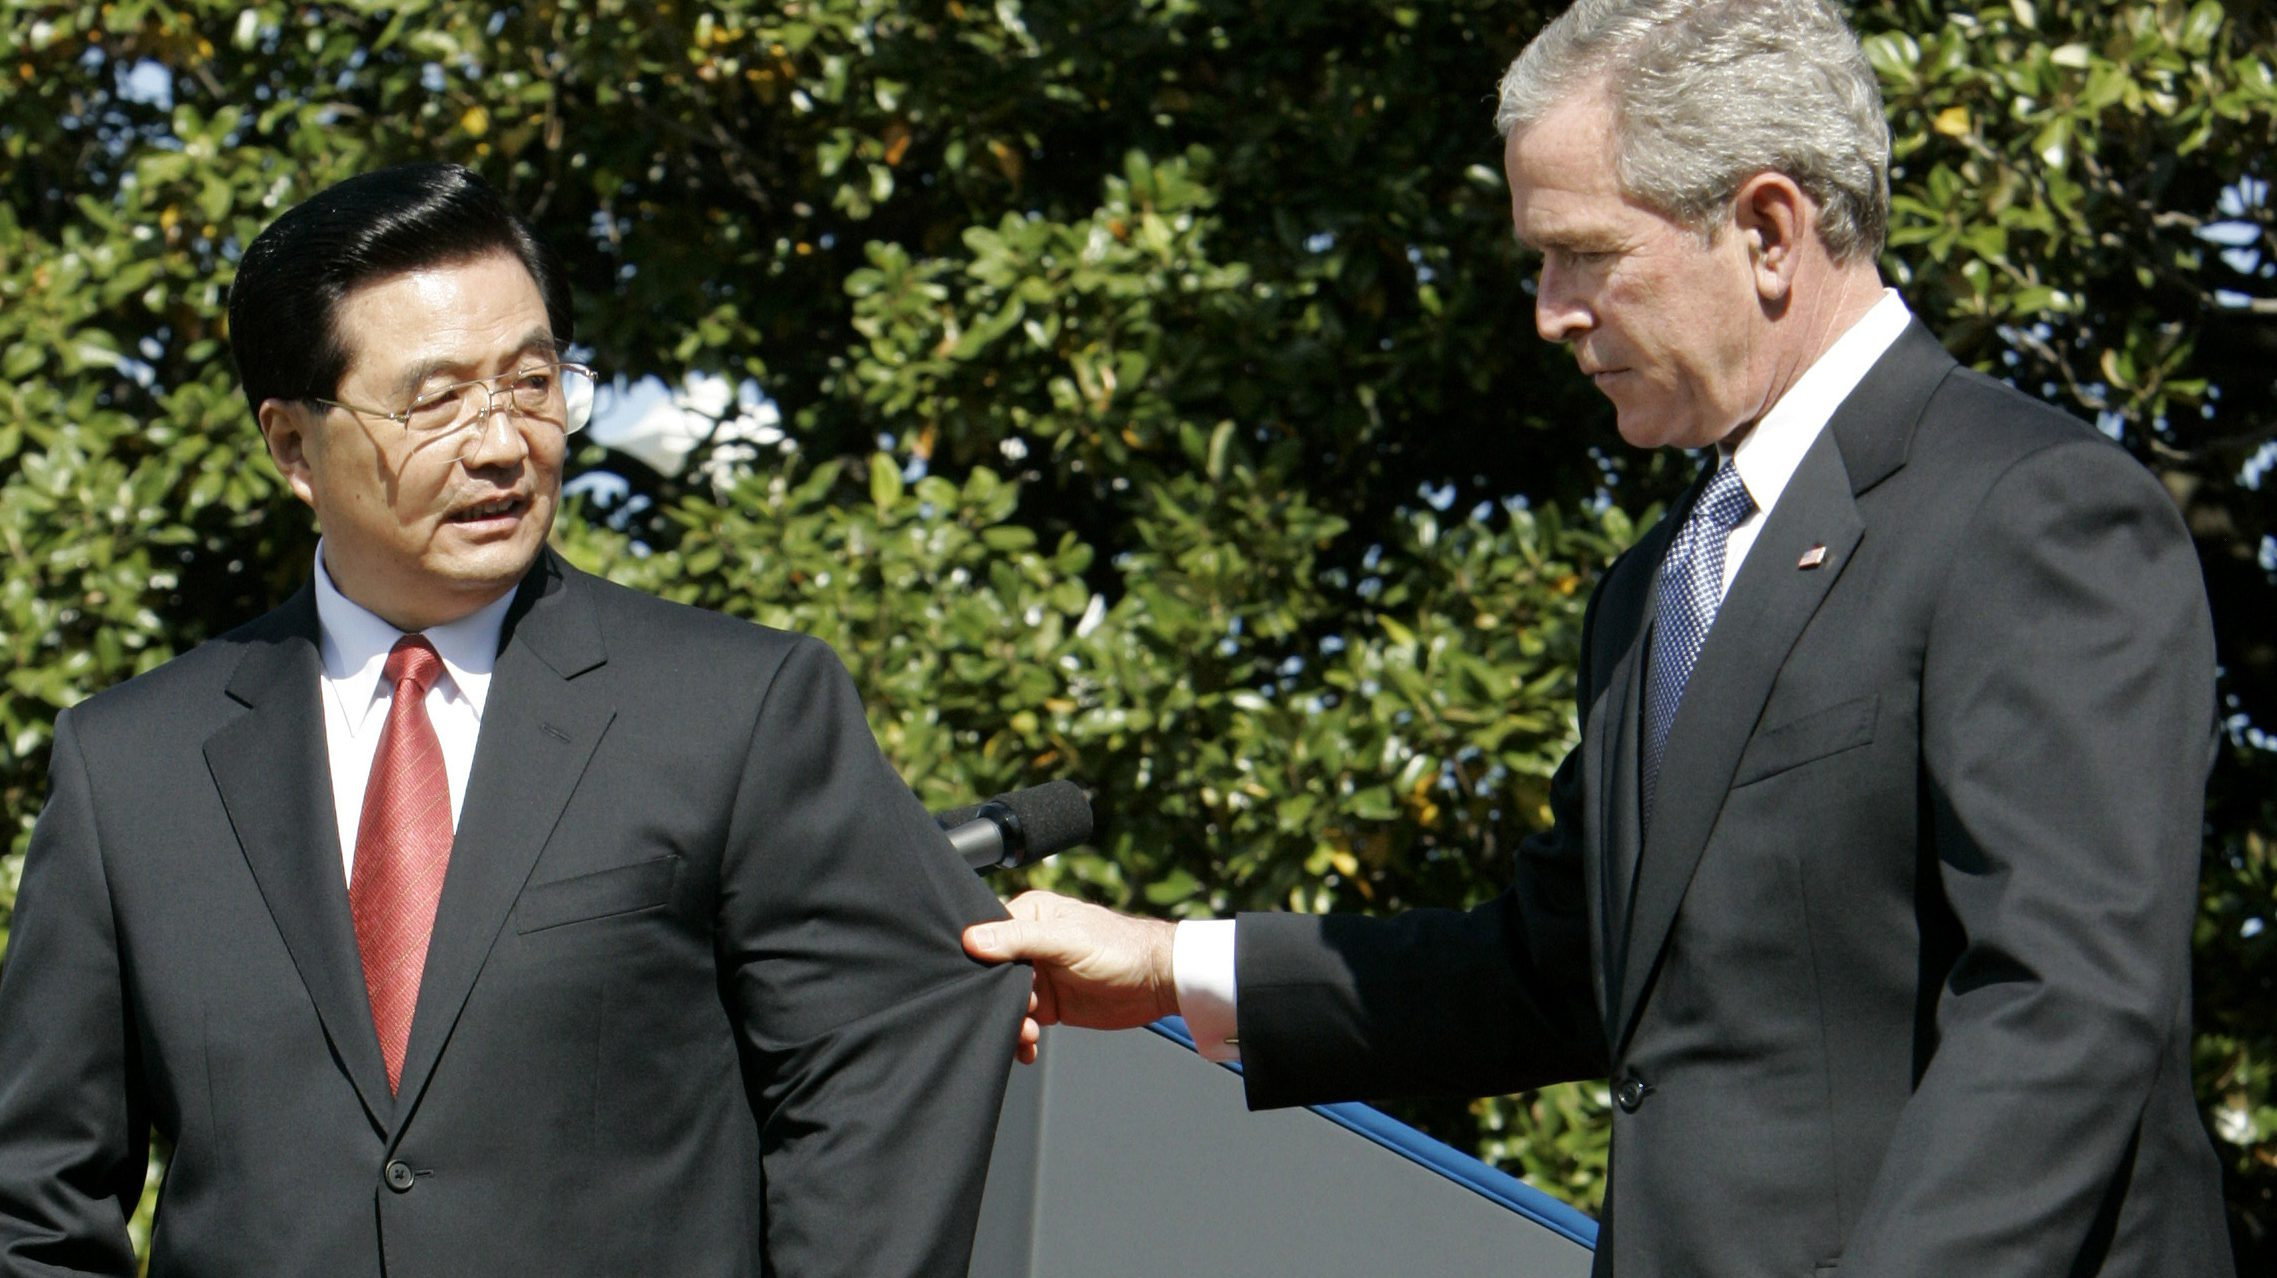 Chinese President Hu Jintao (L) looks back at U.S. President George W. Bush as Bush reaches out and pulls him back by his suit jacket as the President of China prepared to walk down the wrong set of steps to leave the stage during official South Lawn Arrival Ceremonies at the White House in Washington, April 20, 2006.      REUTERS/Jim Bourg - RTR1CMRK